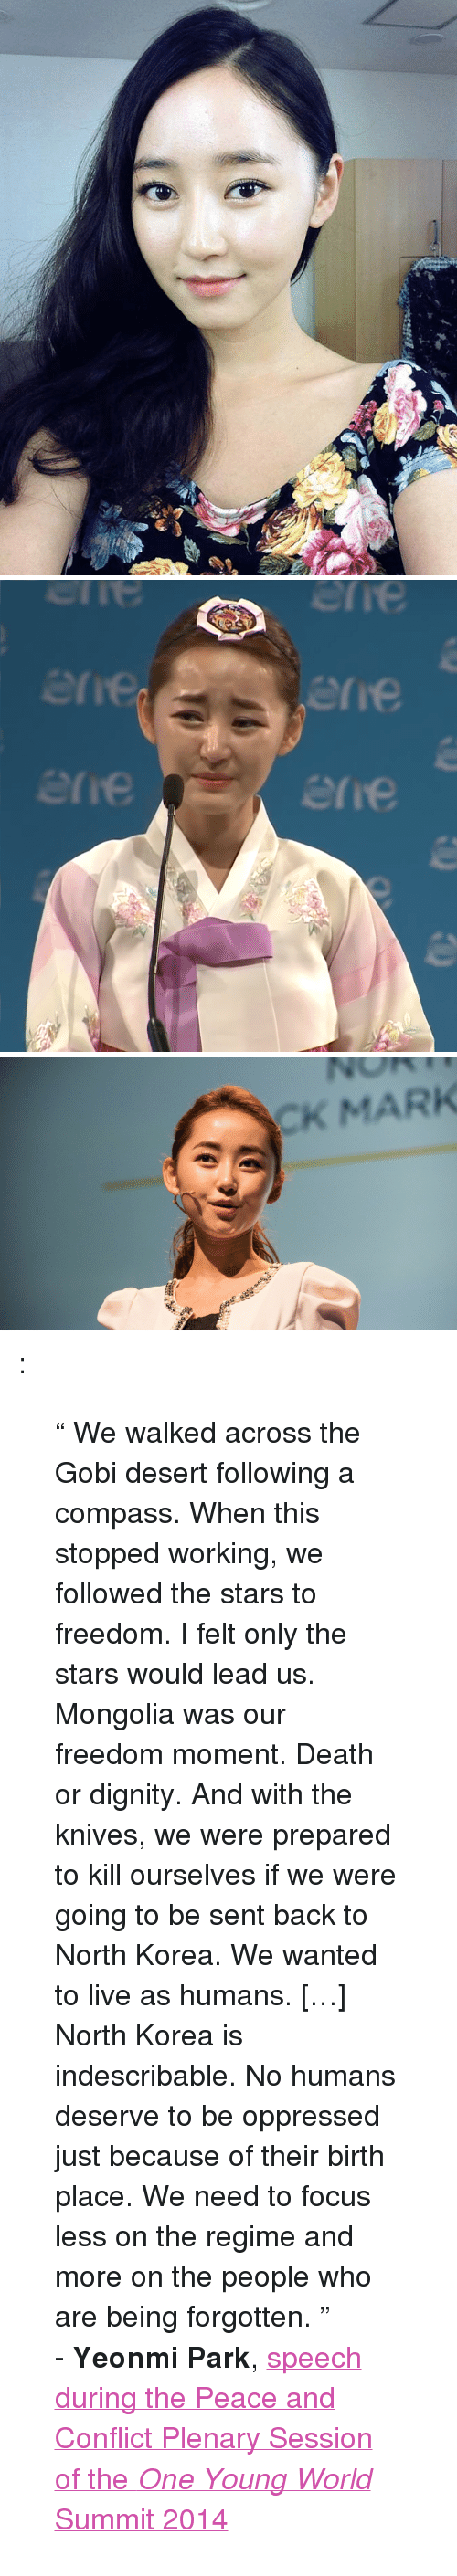 """oppressed: erie  erre  erie  re   CK MARK <p><a class=""""tumblr_blog"""" href=""""http://.tumblr.com/post/109307342016""""></a>:</p> <blockquote> <p>"""" We walked across the Gobi desert following a compass. When this stopped working, we followed the stars to freedom. I felt only the stars would lead us. Mongolia was our freedom moment. Death or dignity. And with the knives, we were prepared to kill ourselves if we were going to be sent back to North Korea. We wanted to live as humans. […] North Korea is indescribable. No humans deserve to be oppressed just because of their birth place. We need to focus less on the regime and more on the people who are being forgotten. """"</p> <p>- <span class=""""fn""""><strong>Yeonmi</strong> <strong>Park</strong>, <a href=""""https://www.youtube.com/watch?v=Ei-gGvLWOZI"""">speech </a></span><span class=""""fn""""><a href=""""https://www.youtube.com/watch?v=Ei-gGvLWOZI"""">during the Peace and Conflict Plenary Session of the <em>One Young World</em> Summit 2014</a></span></p> </blockquote>"""